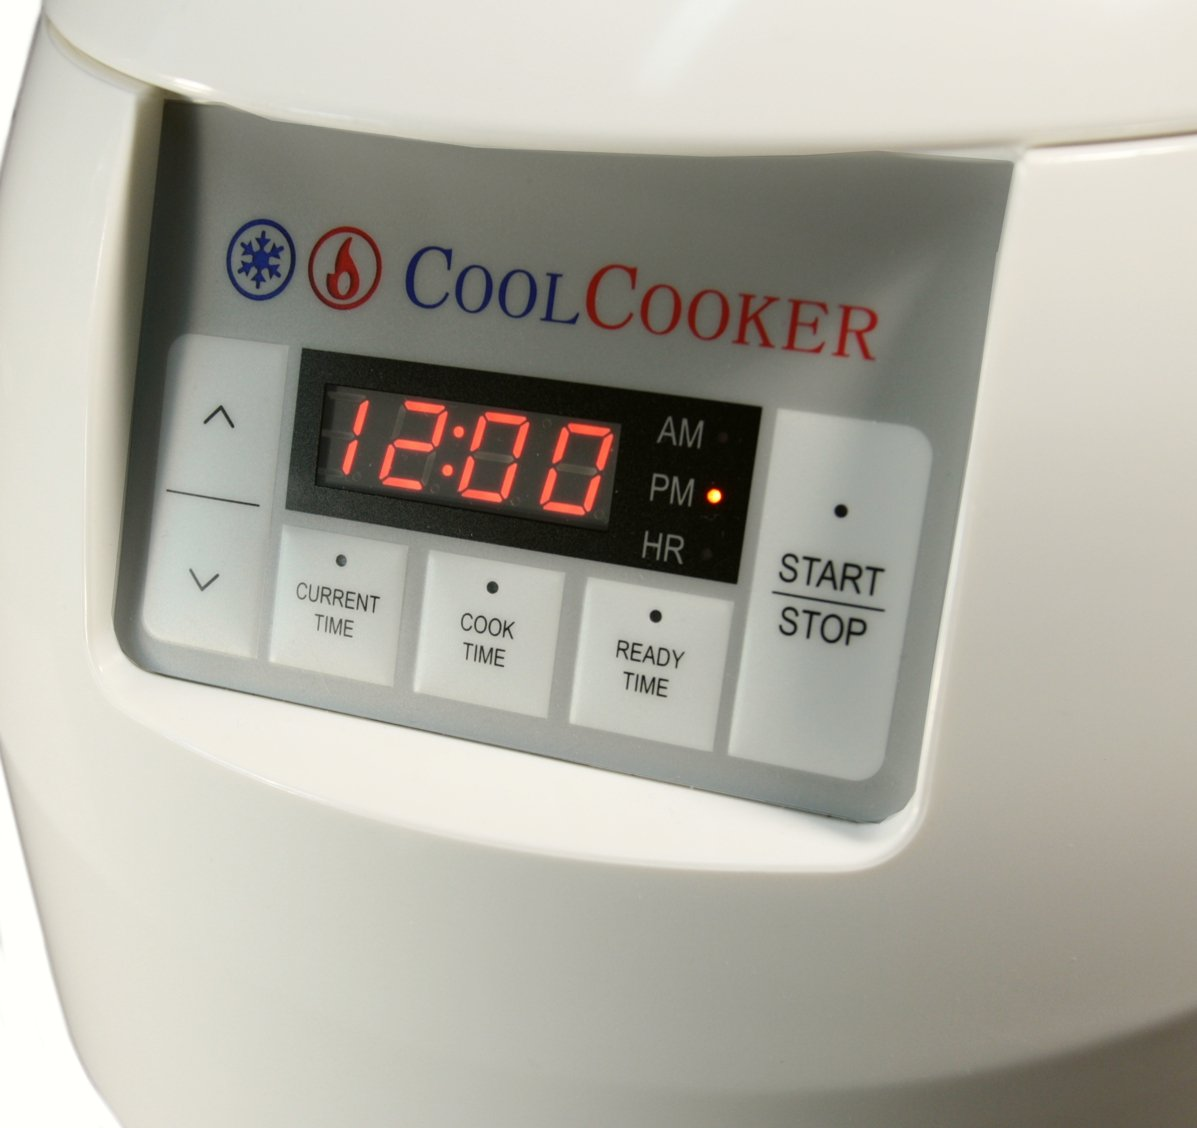 the coolcooker--a refrigerated slow cooker with a delayed start feature